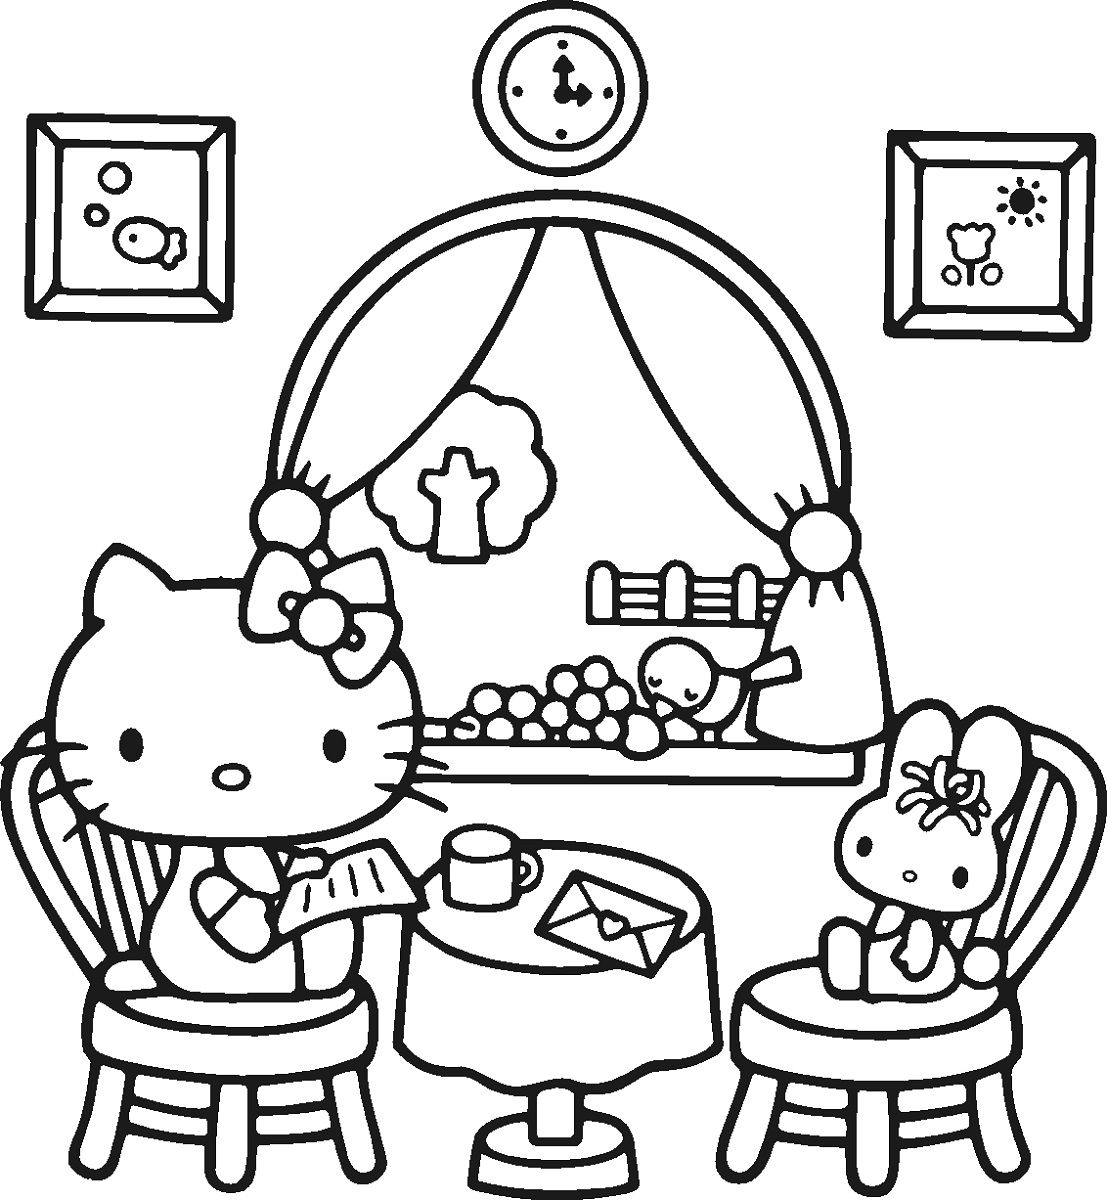 Free Coloring Pages For Kid S Activity Hello Kitty Coloring Hello Kitty Colouring Pages Kitty Coloring